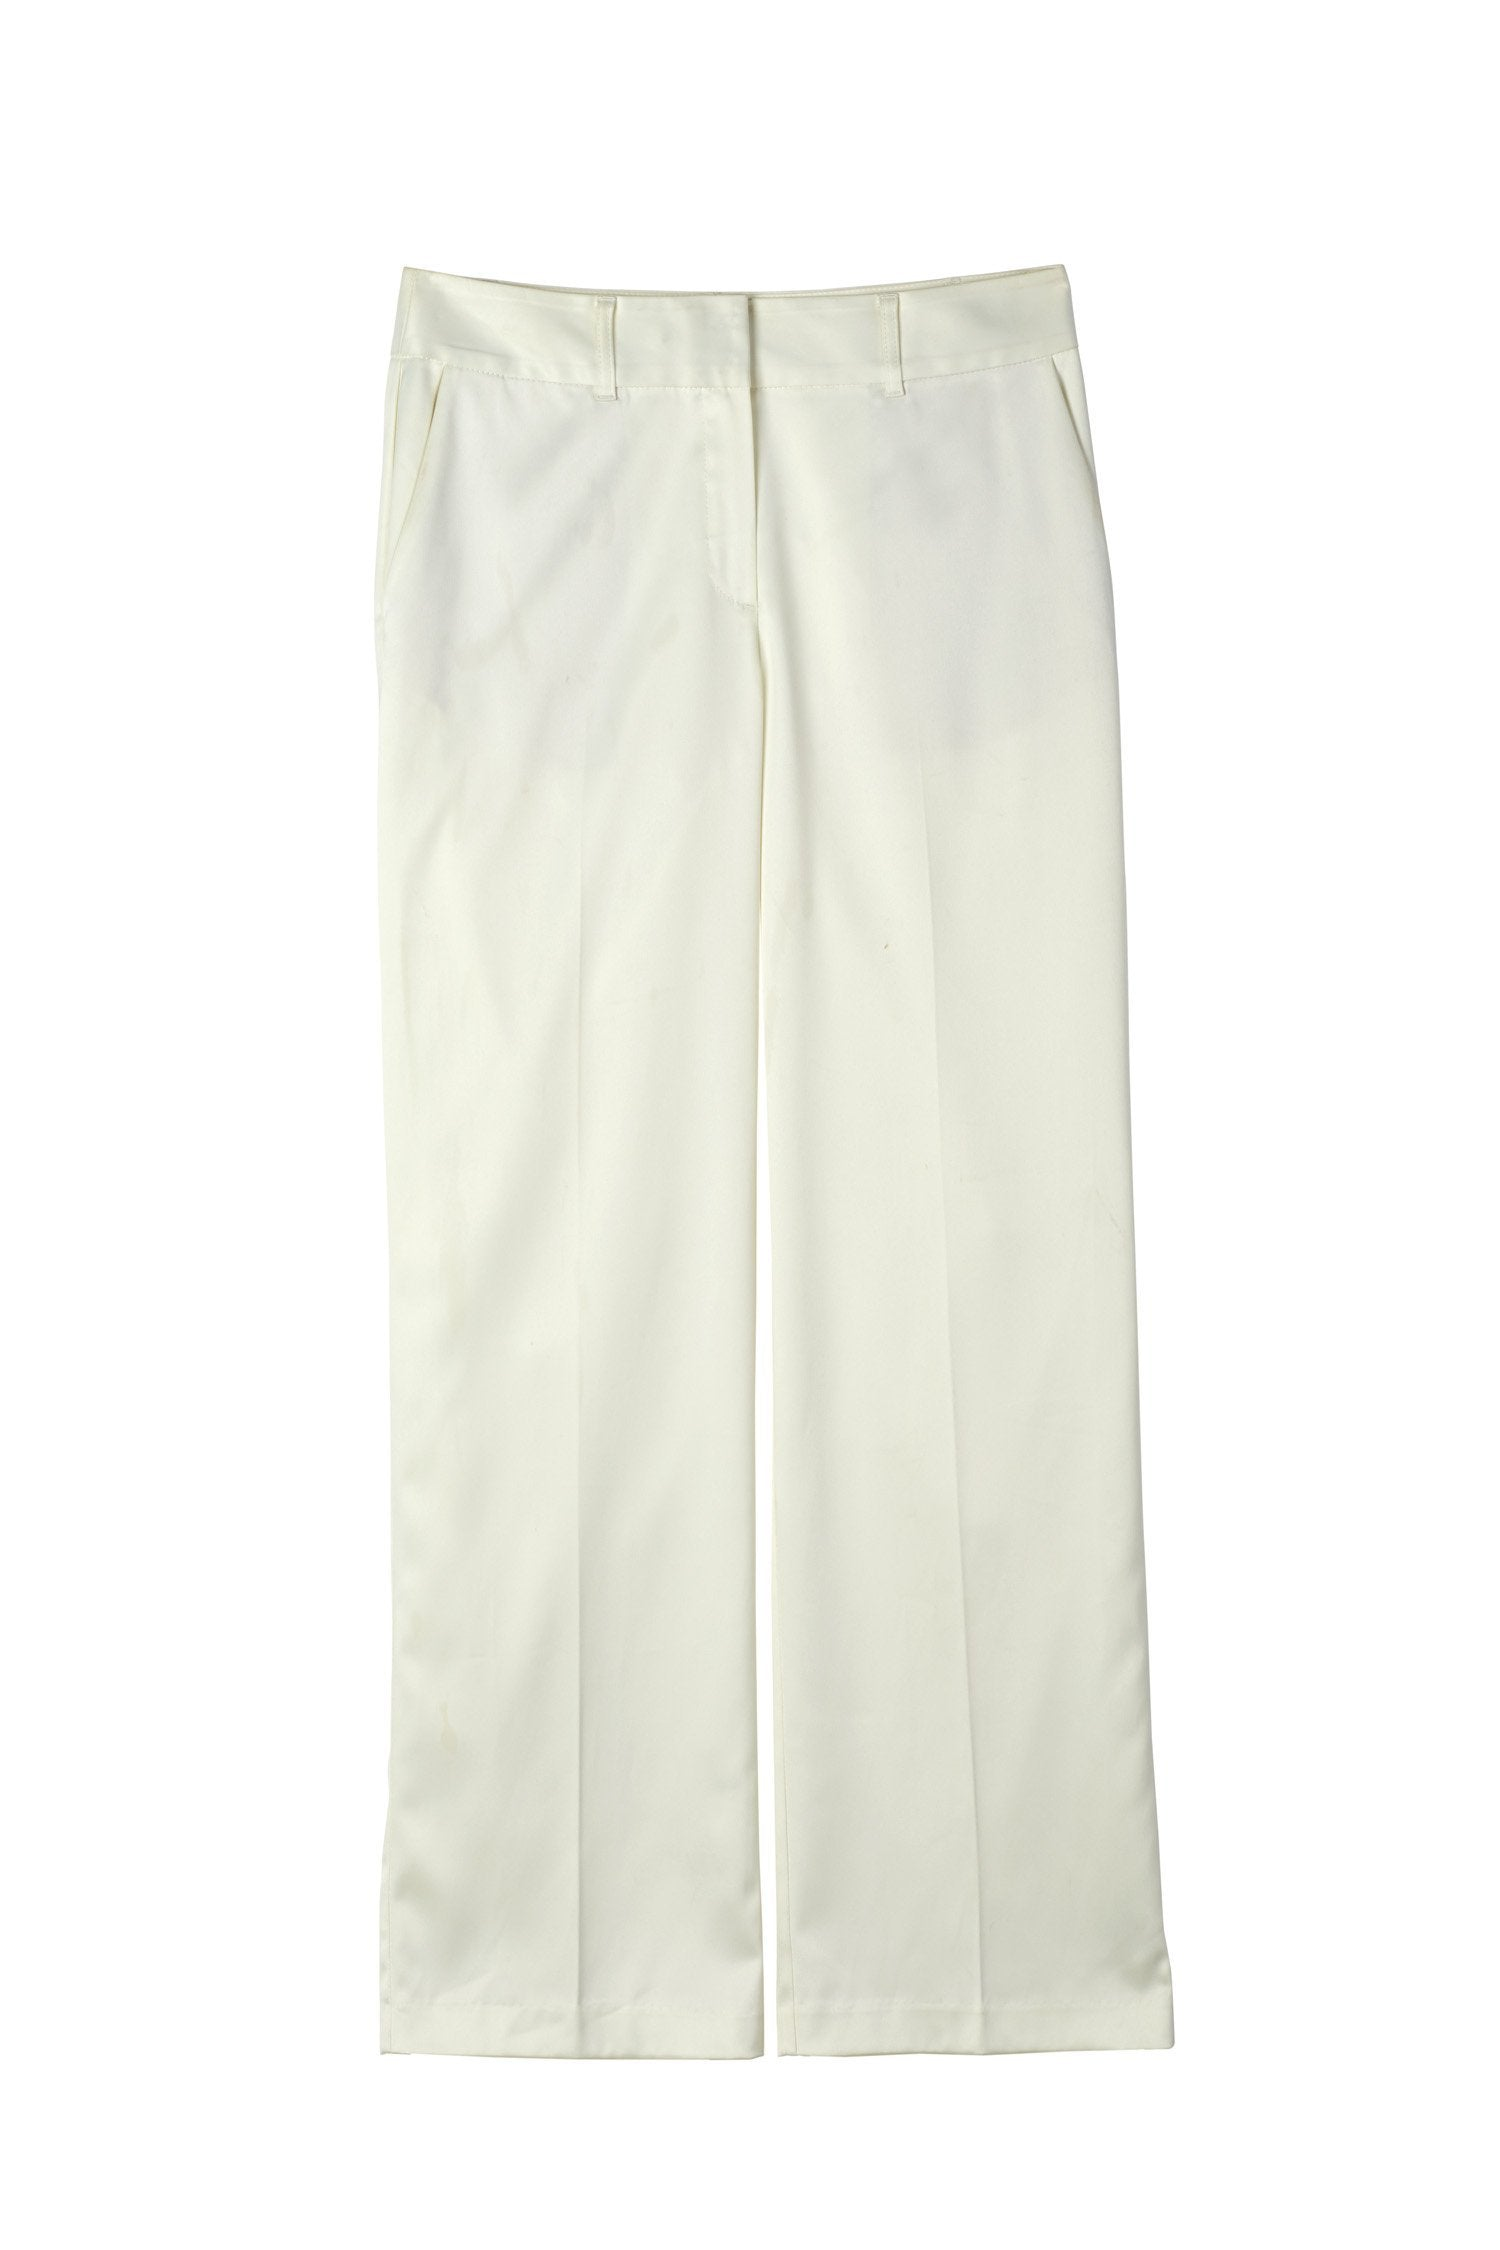 BELTON TROUSERS - OFF WHITE Trousers Stylein